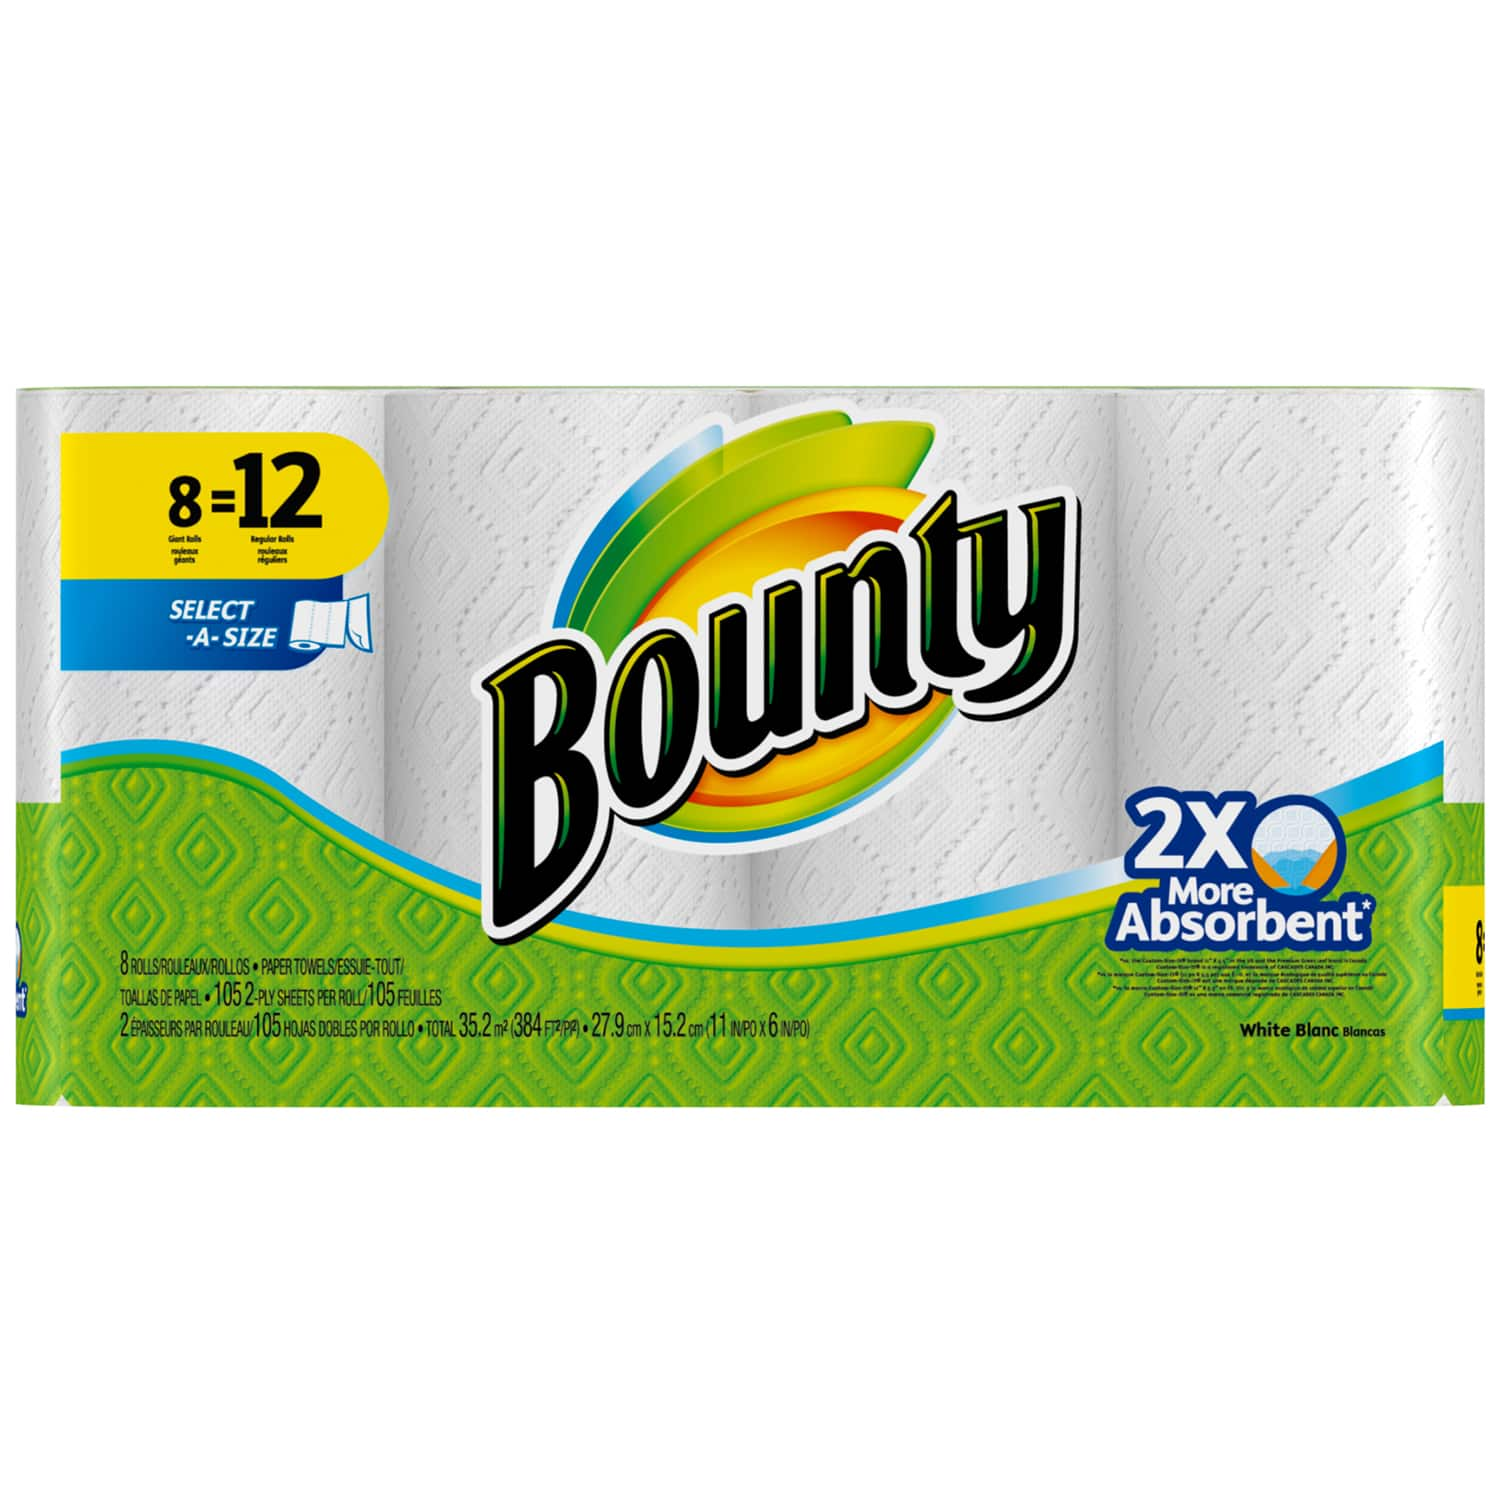 24-Ct Bounty Giant Roll Paper Towels + $10 Target Gift Card  $24 + Free Shipping